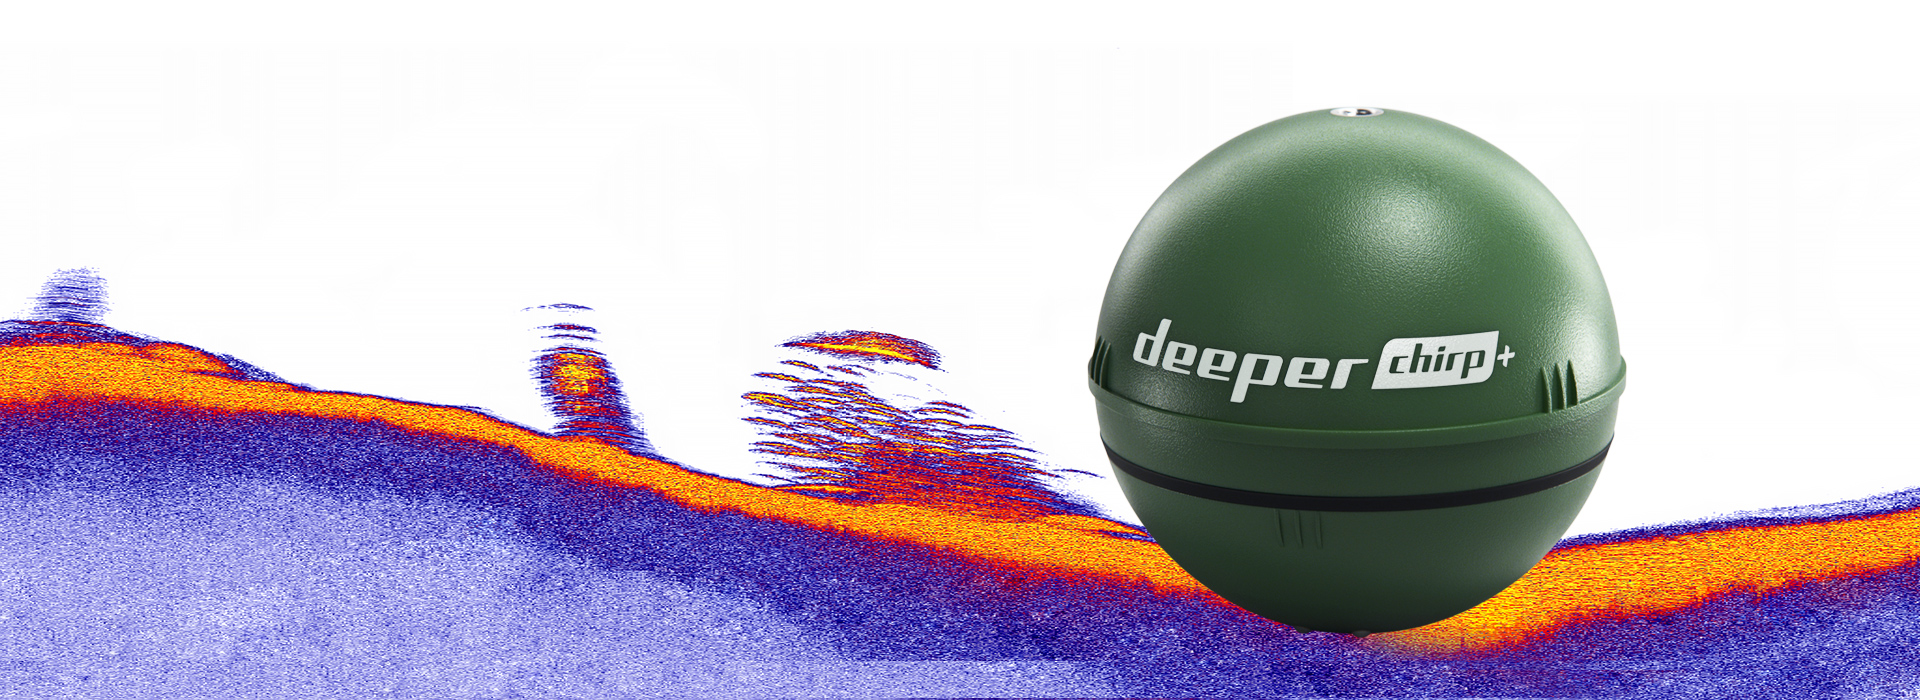 Fishing ForwardWorld's Only Castable CHIRP Sonar with Built-In GPS